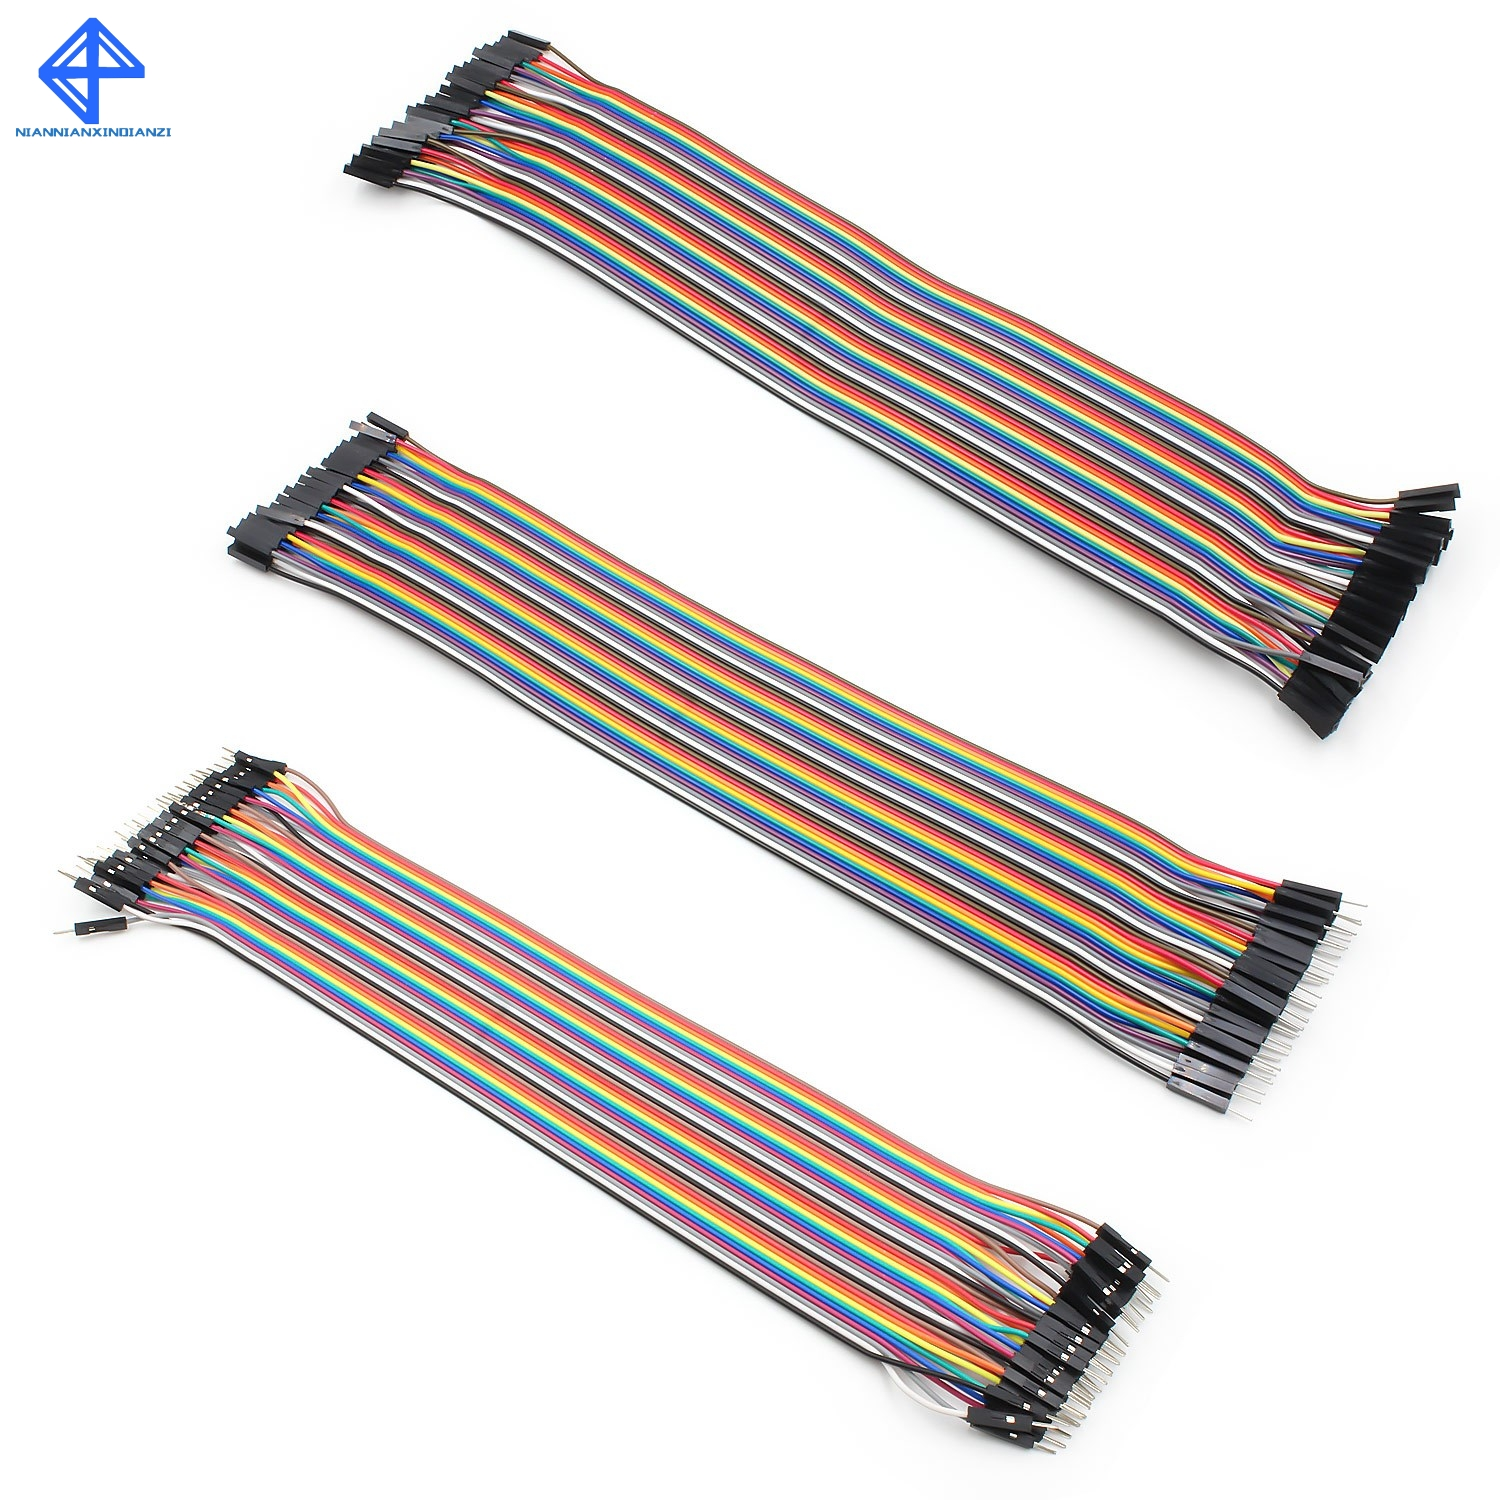 10PCS 65Pcs Male to Male Solderless Flexible Breadboard Jumper Cable Wires Ardui